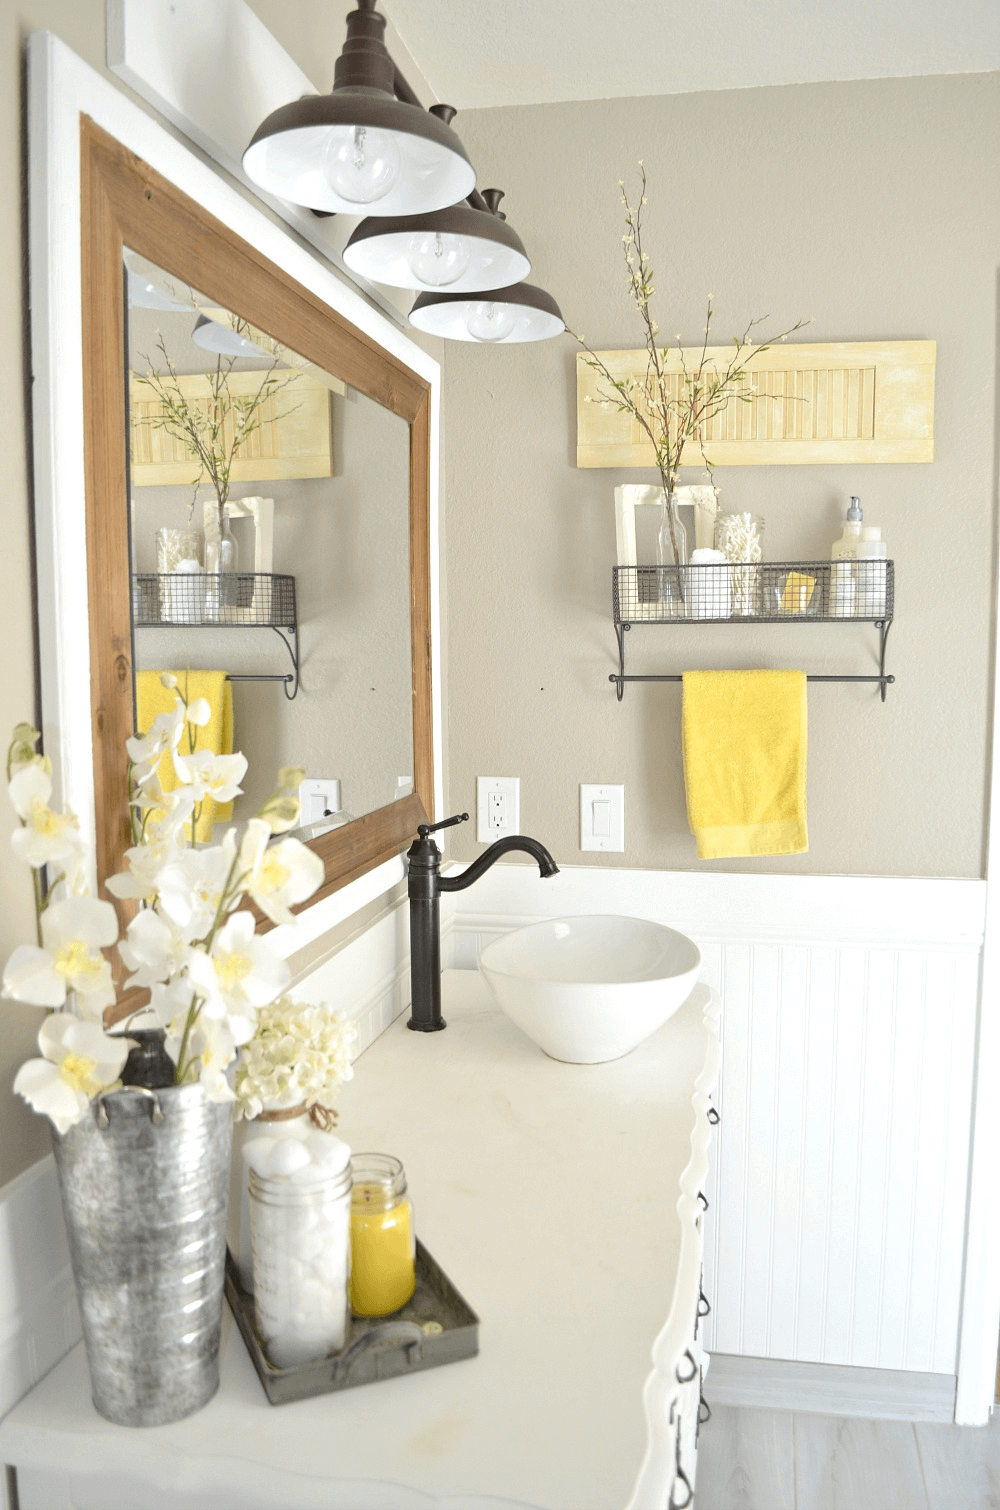 Farmhouse bathroom with plants, hanging lamp, and mirror as decor ideas